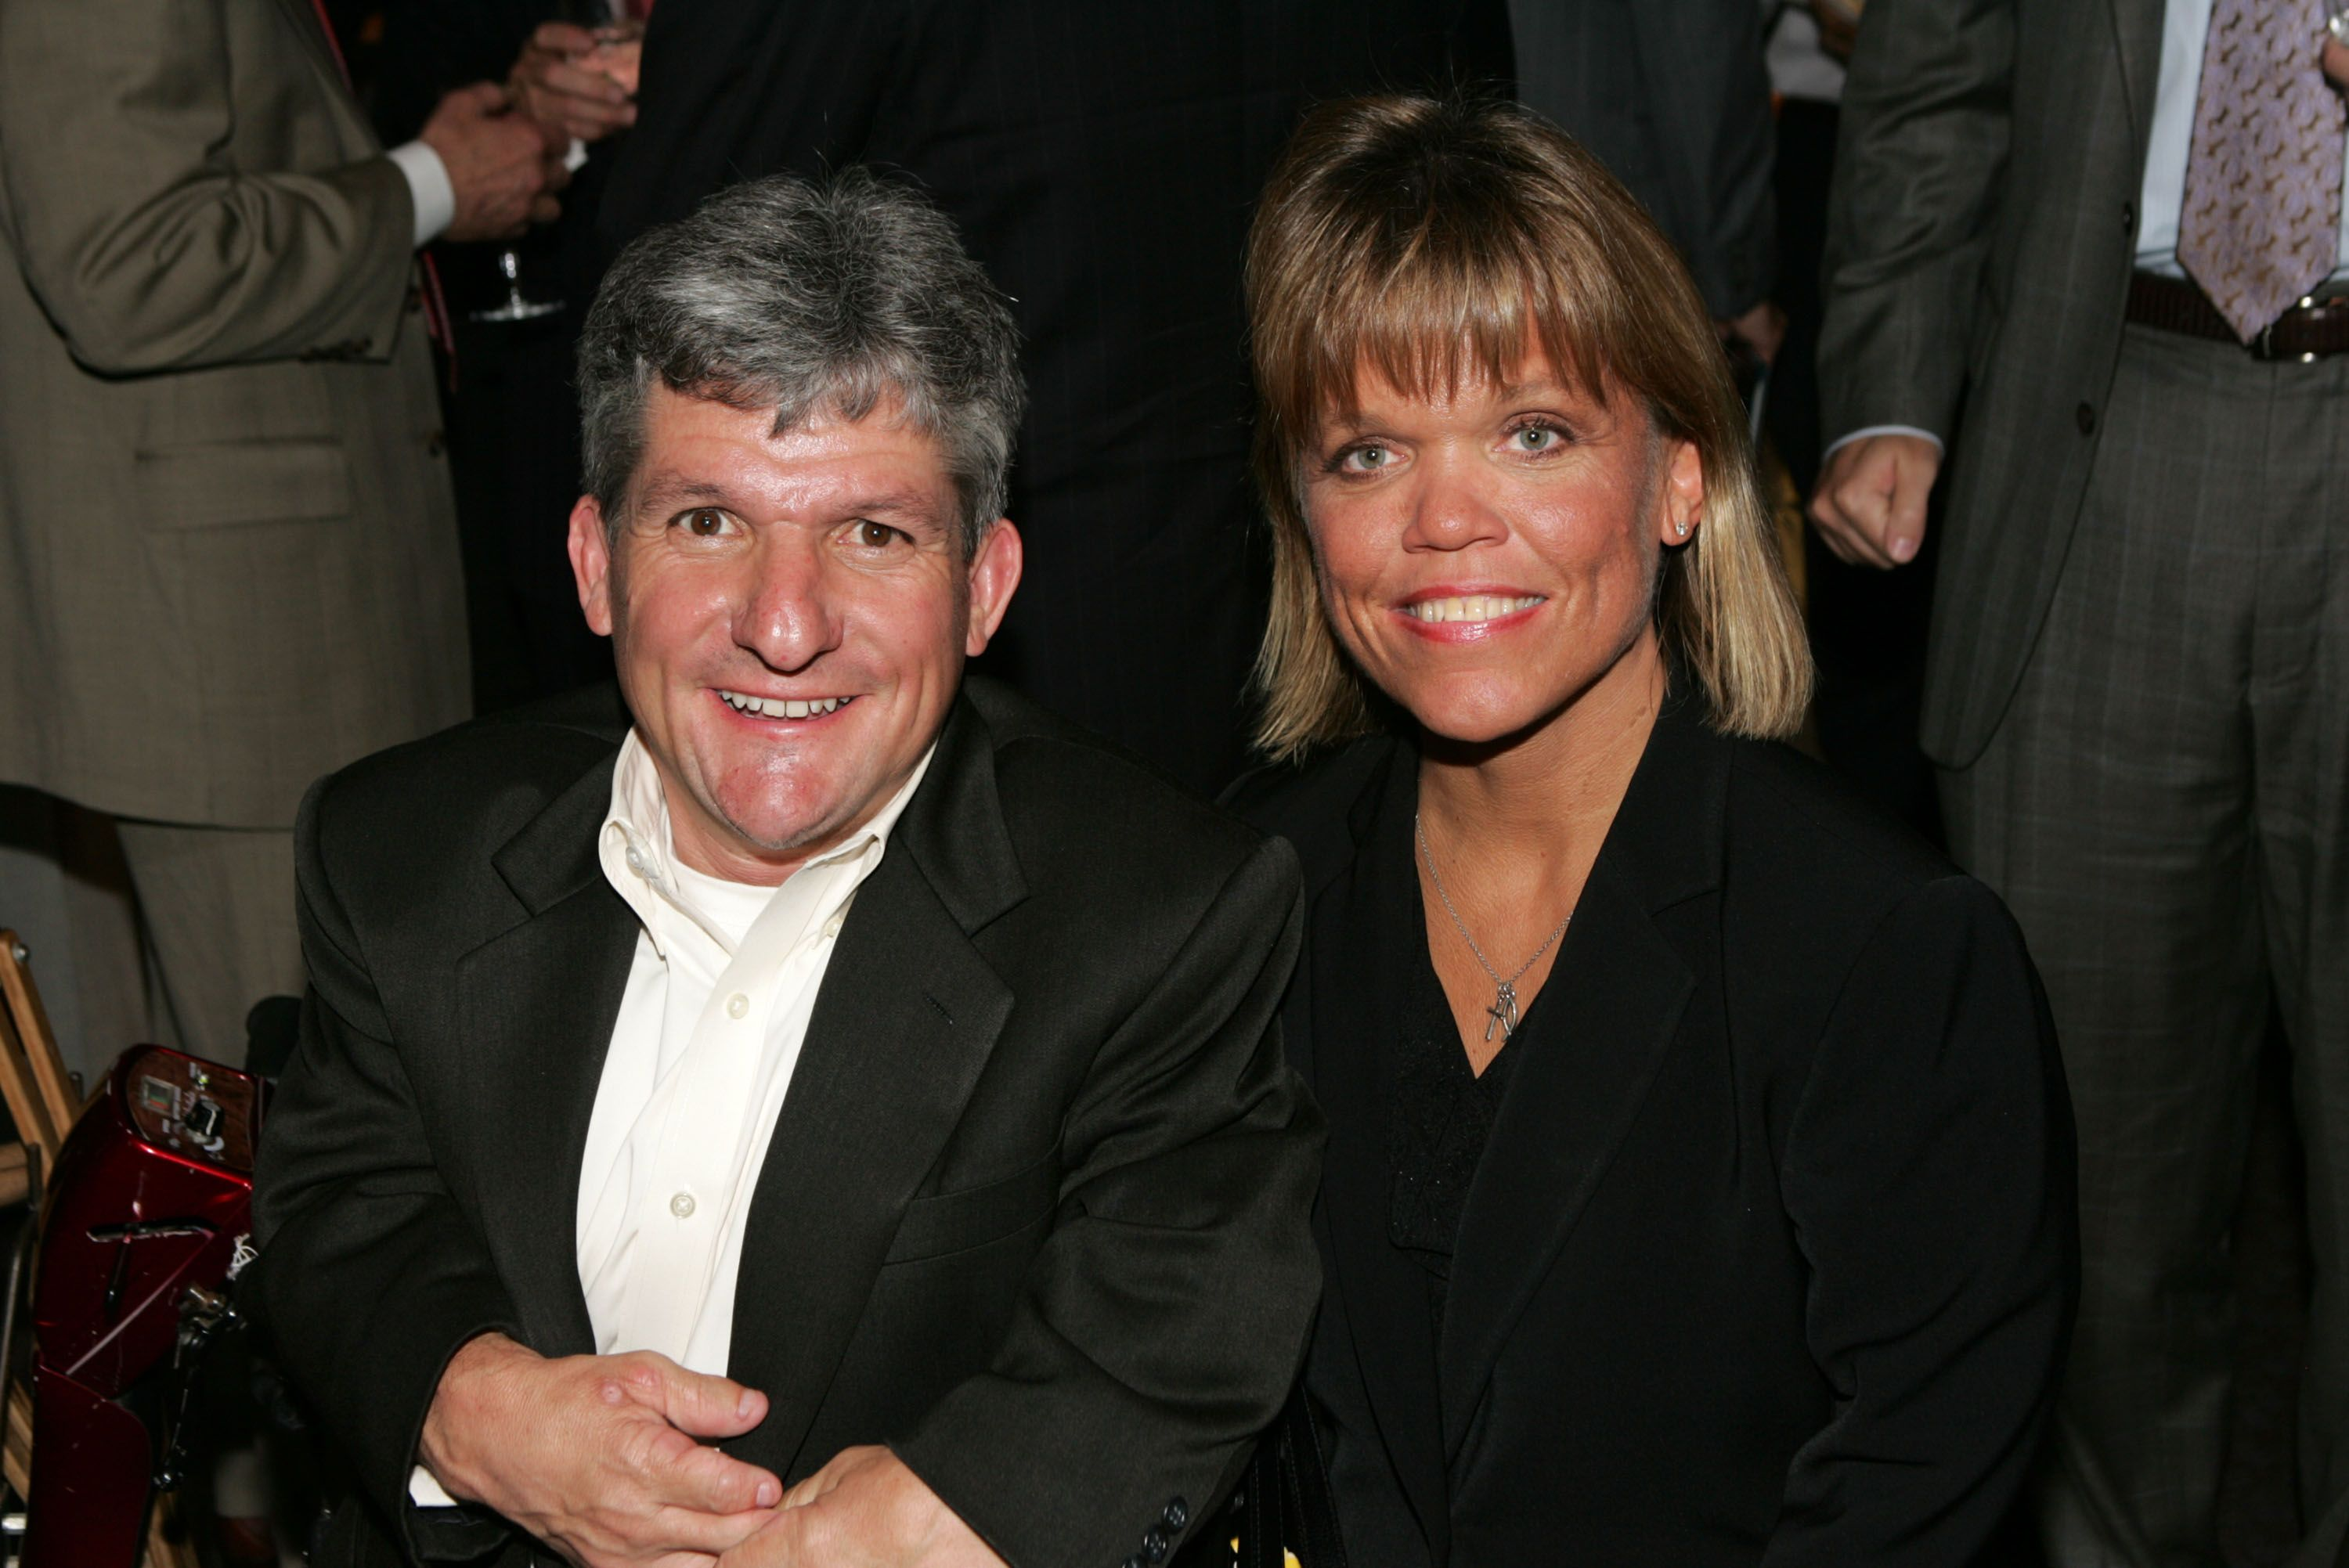 Matt and Amy Roloff at the Discovery Upfront Presentation NY - Talent Images on April 23, 2008, in New York City   Photo: Thos Robinson/Getty Images